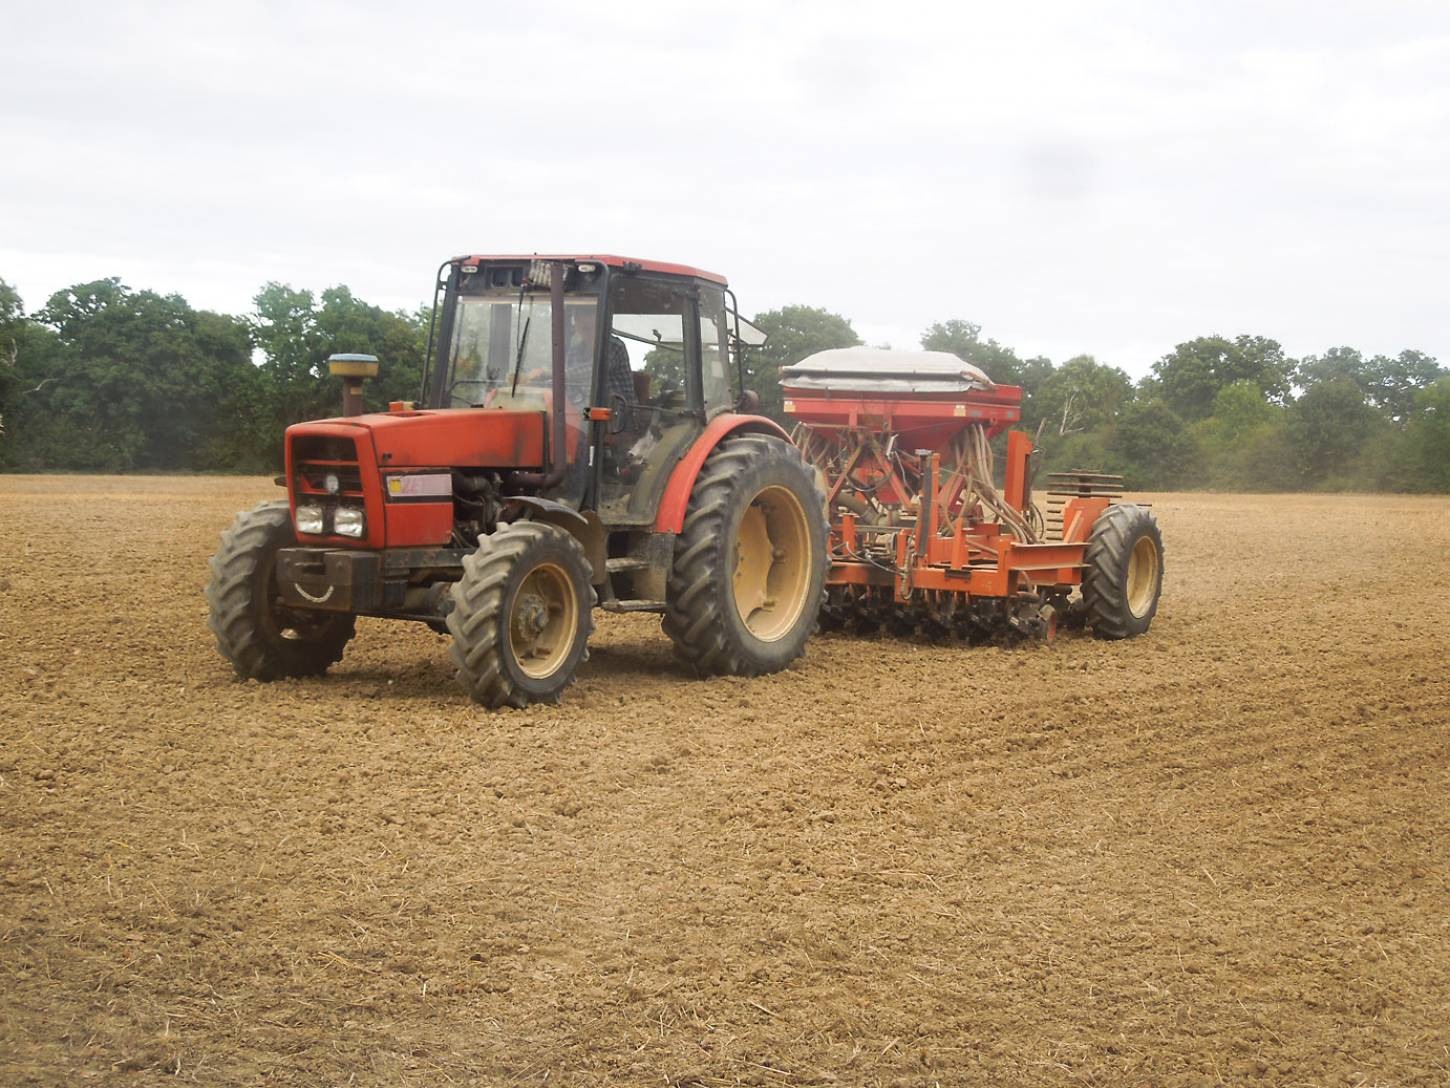 Sowing for 2016/17 season on Lodge Farm, Bletchingley - 4:48pm&nbsp;28<sup>th</sup>&nbsp;Sep.&nbsp;'16